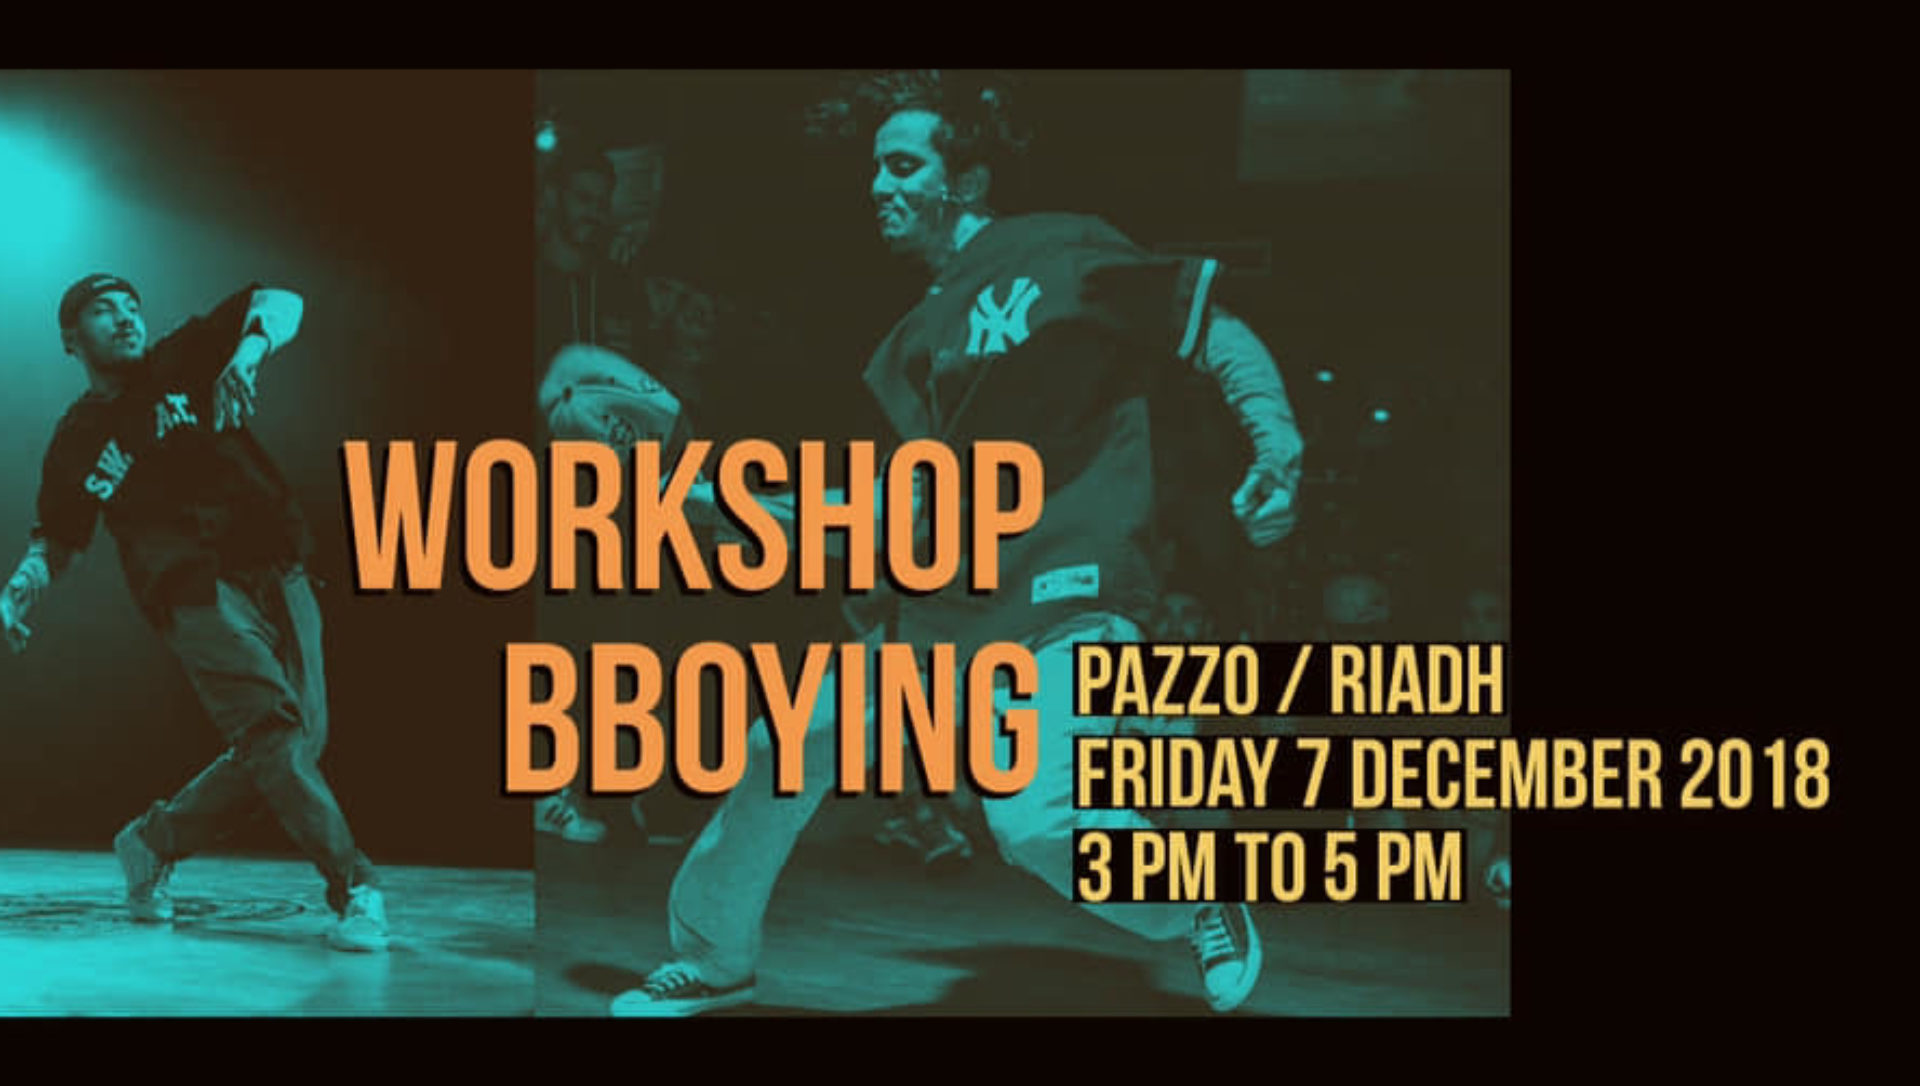 WORKSHOP BBOYING WITH RIADH & PAZZO